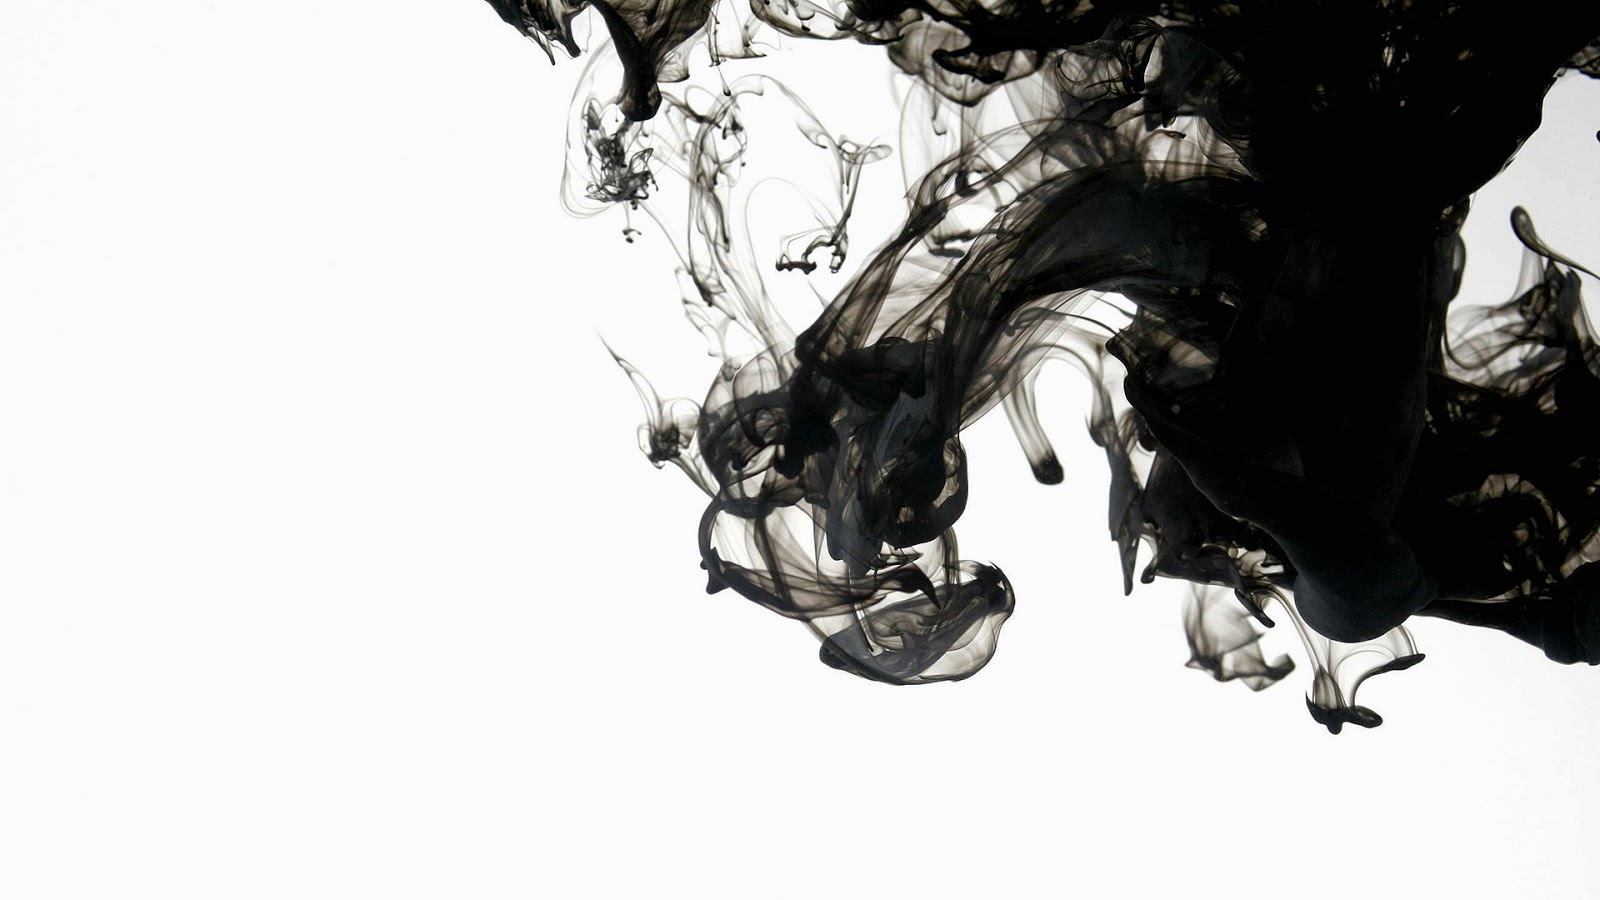 HD Wallpapers Desktop: Black Smoke background Wallpapers